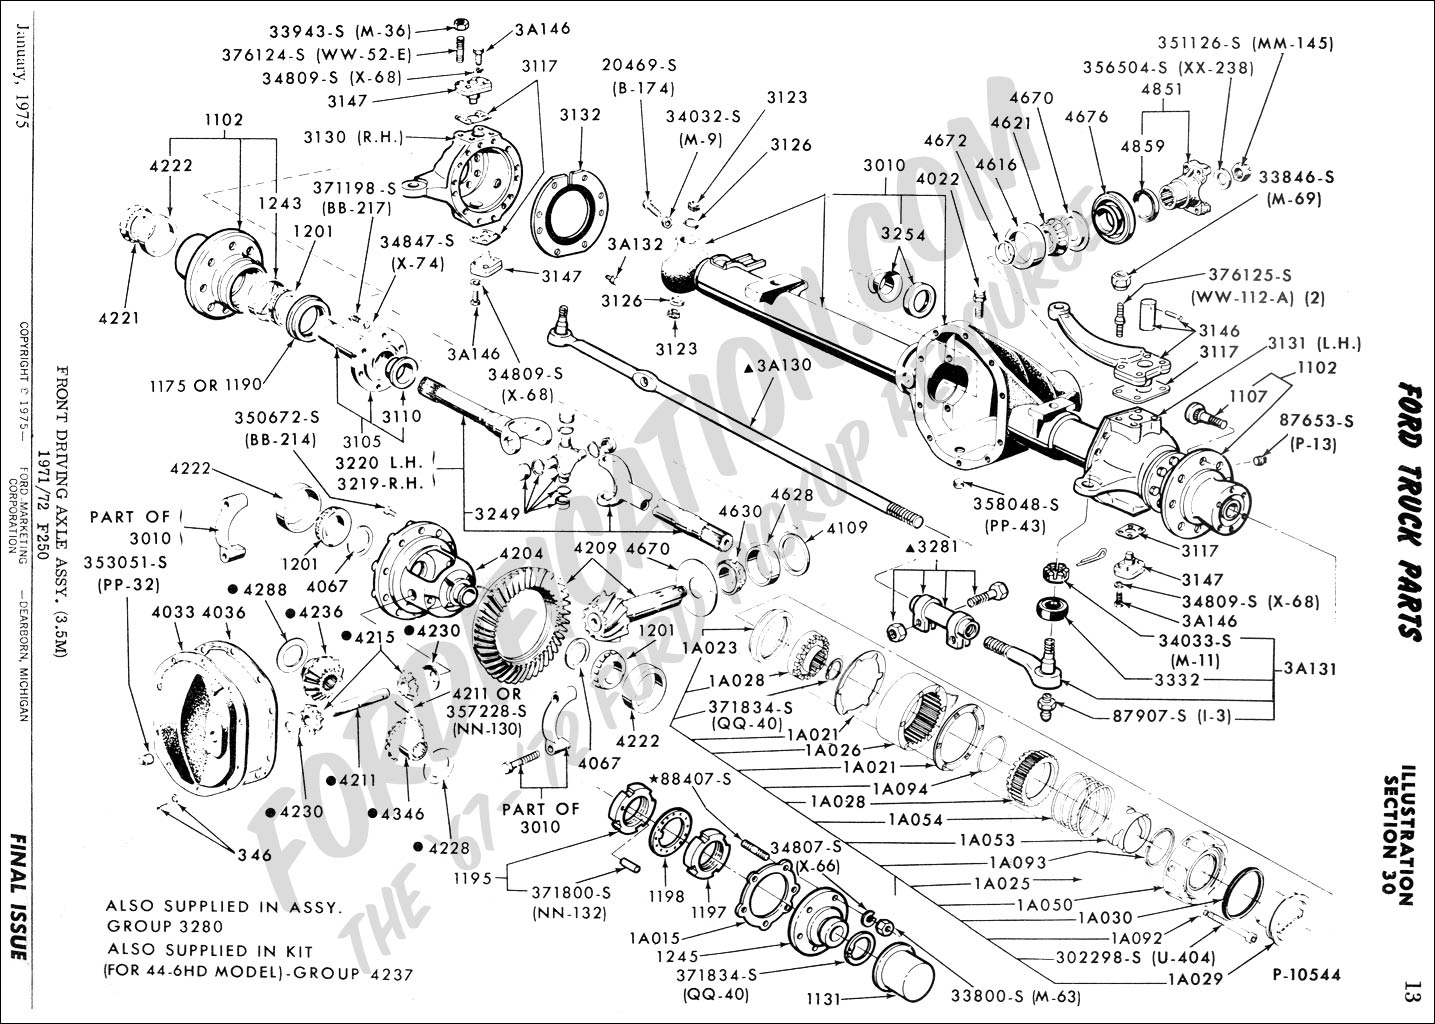 1997 Ford F350 Wiring Diagram, 1997, Free Engine Image For